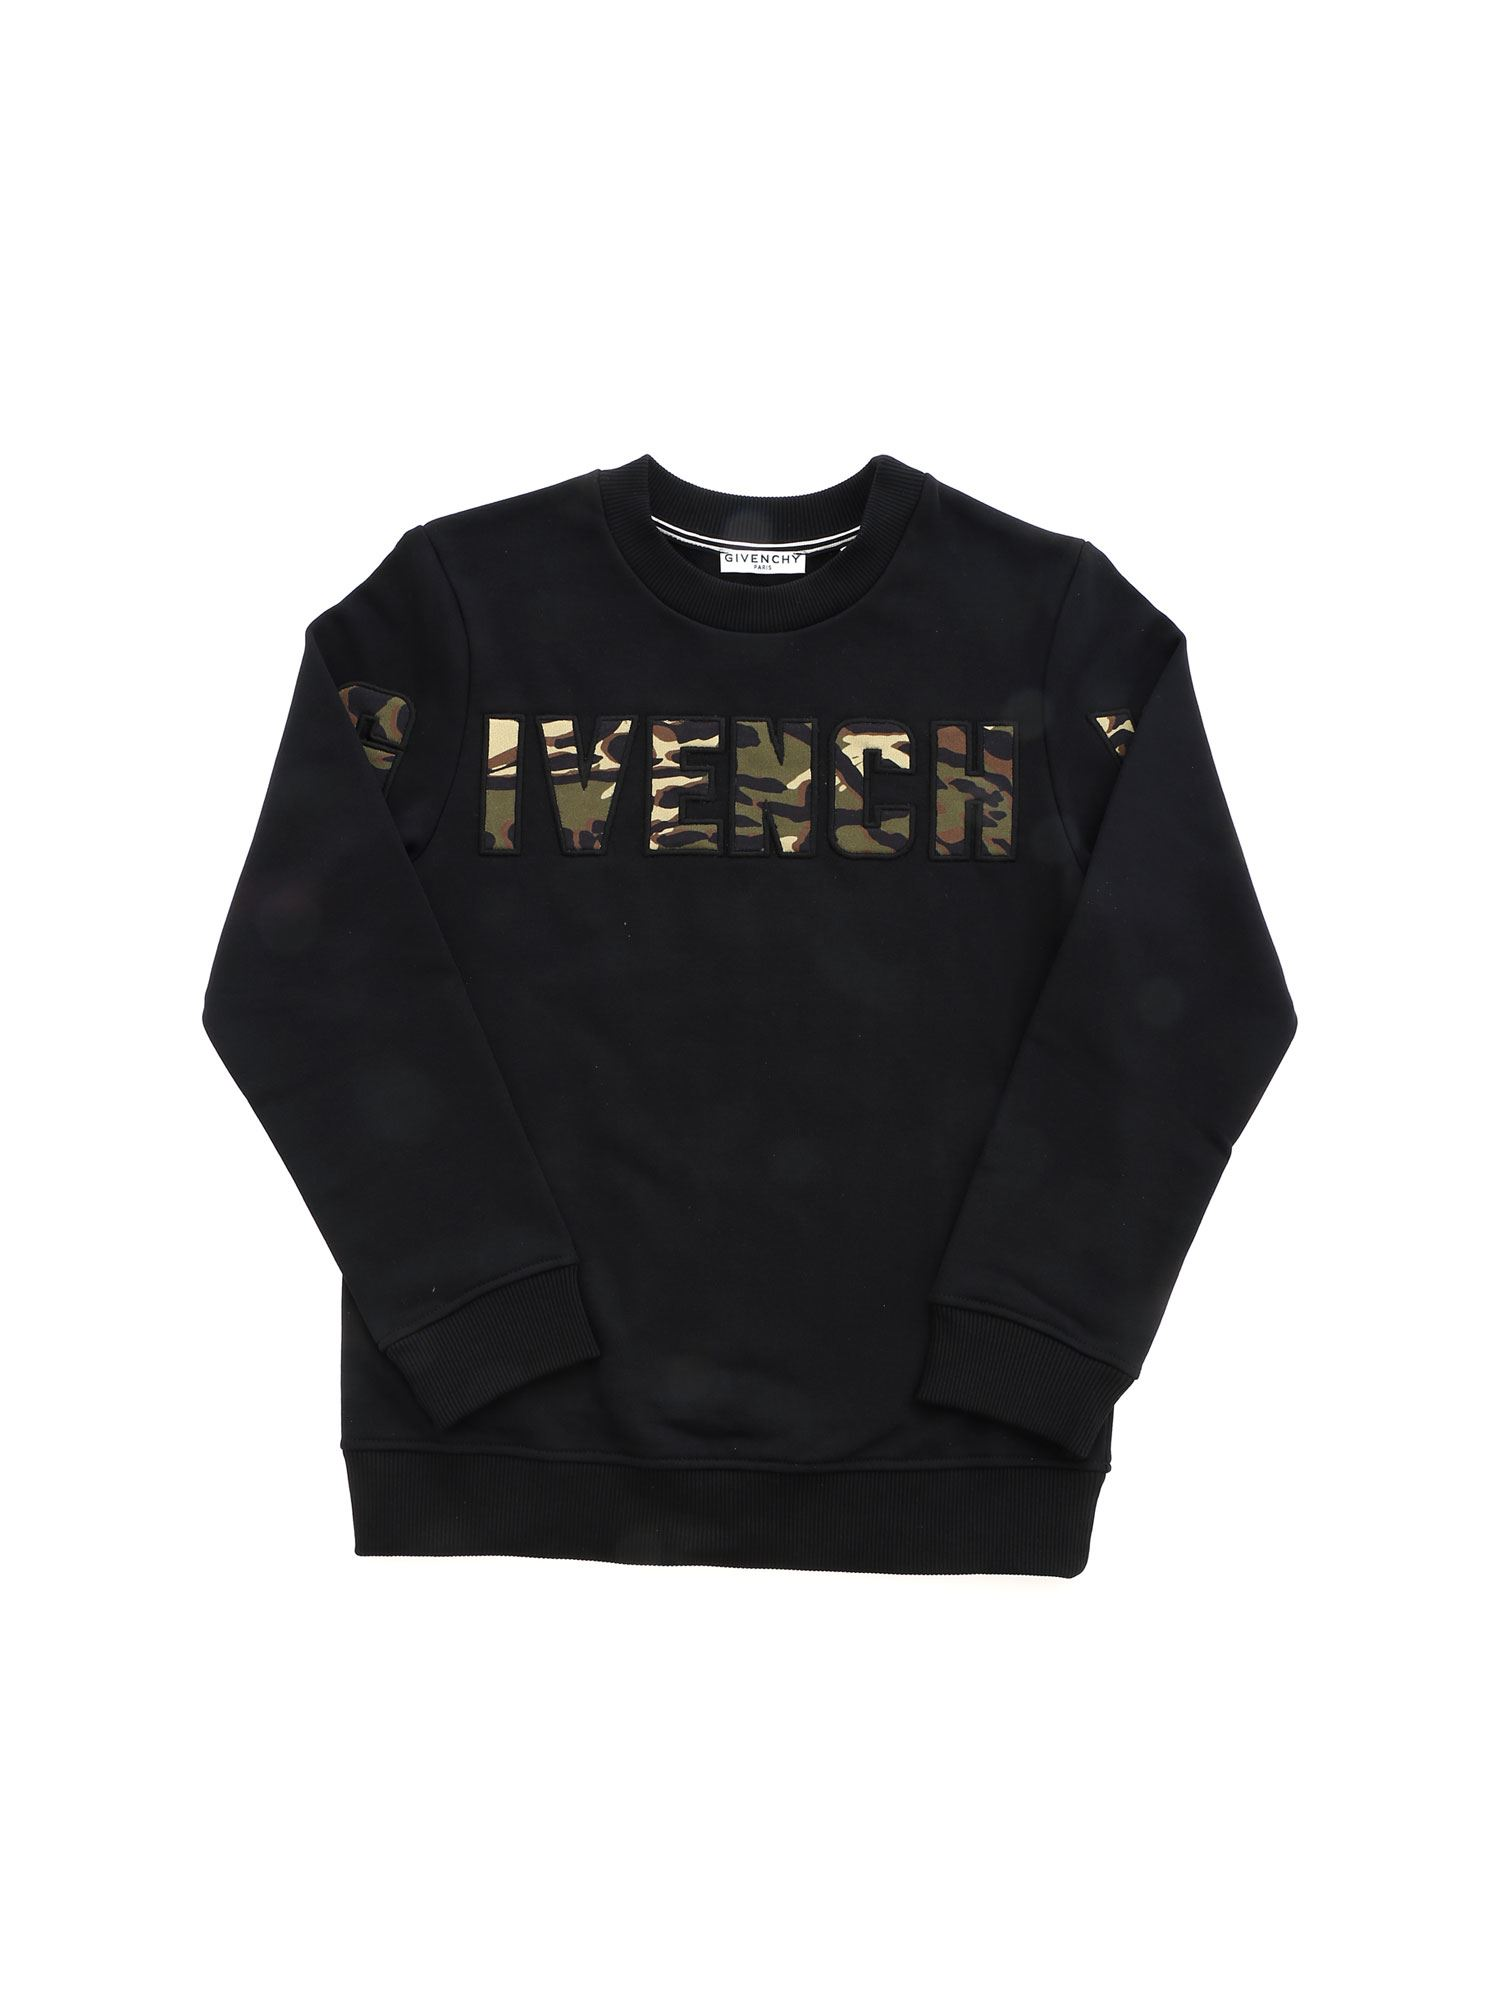 Givenchy Cottons CAMOUFLAGE DETAILS CREWNECK SWEATSHIRT IN BLACK